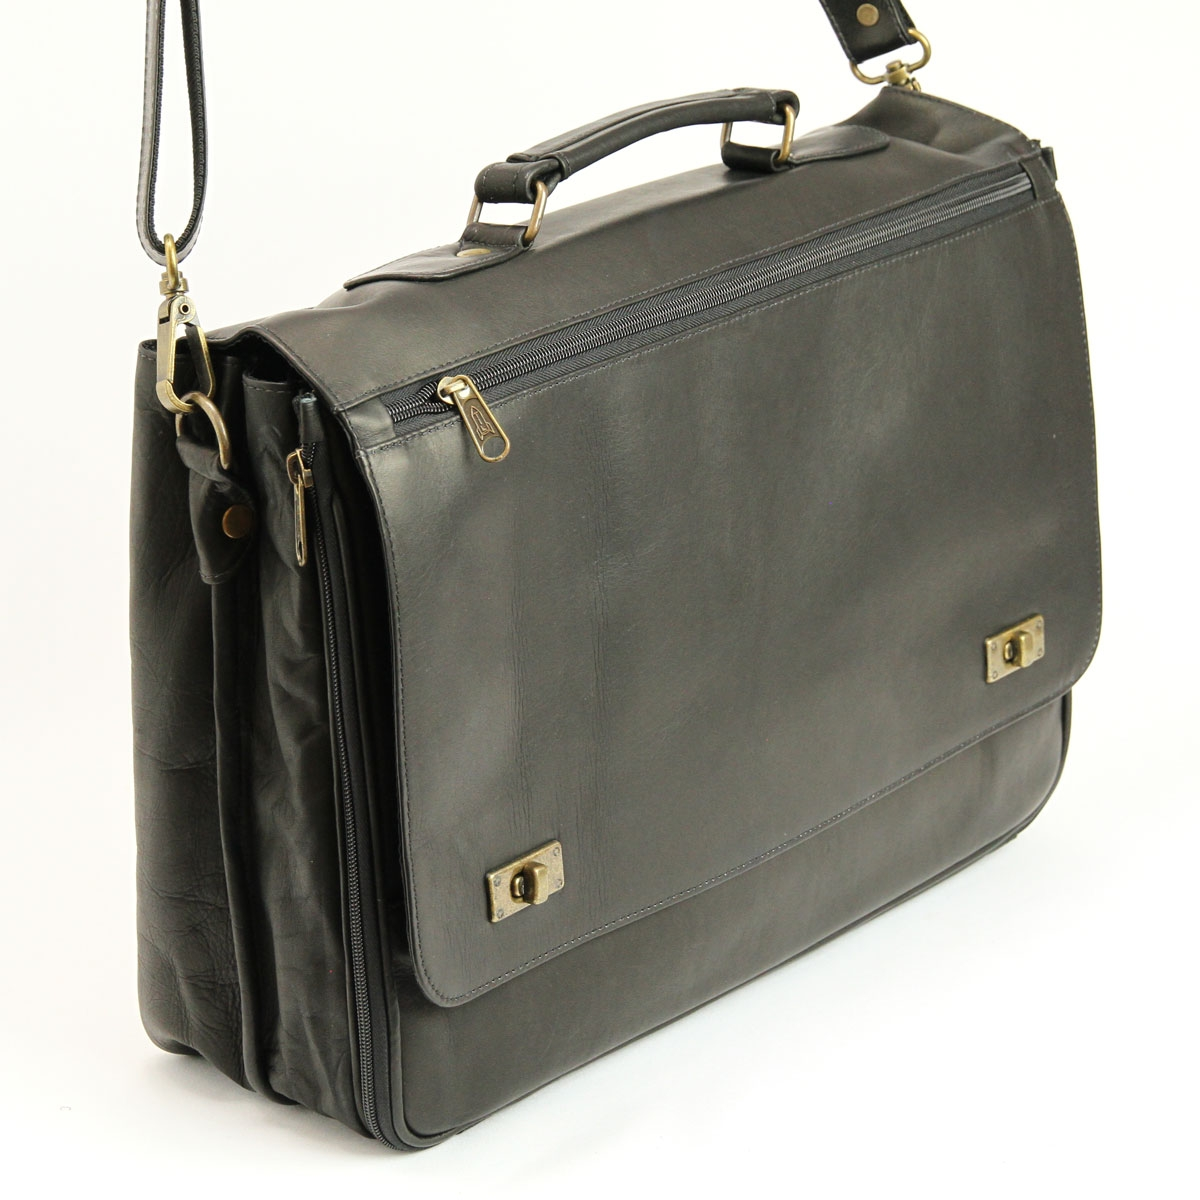 Men's Leather Briefcase in Black | Quality Leather Laptop Bag